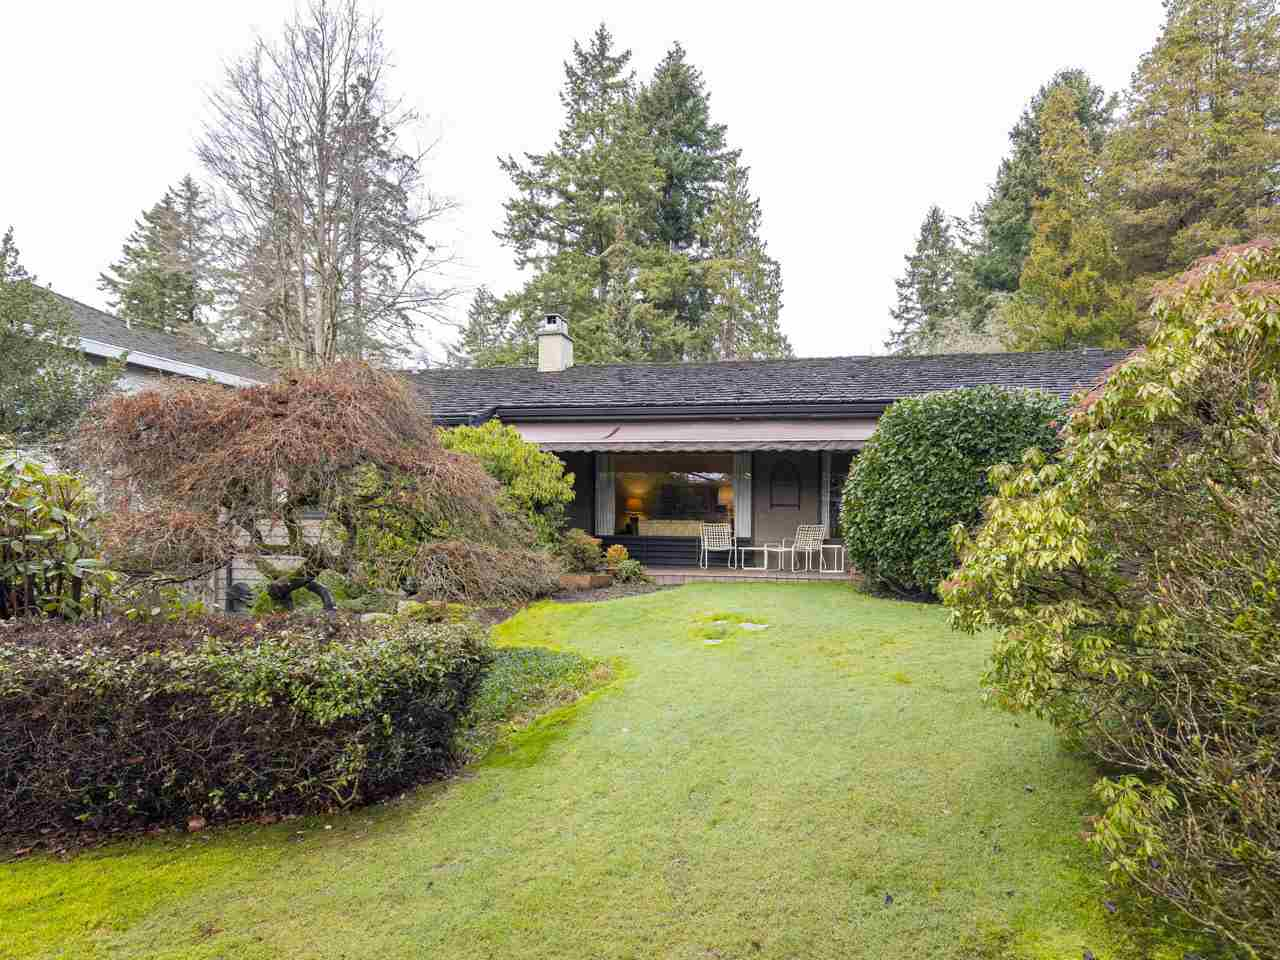 1308 W 54TH AVENUE - South Granville House/Single Family for sale, 4 Bedrooms (R2528346) - #17